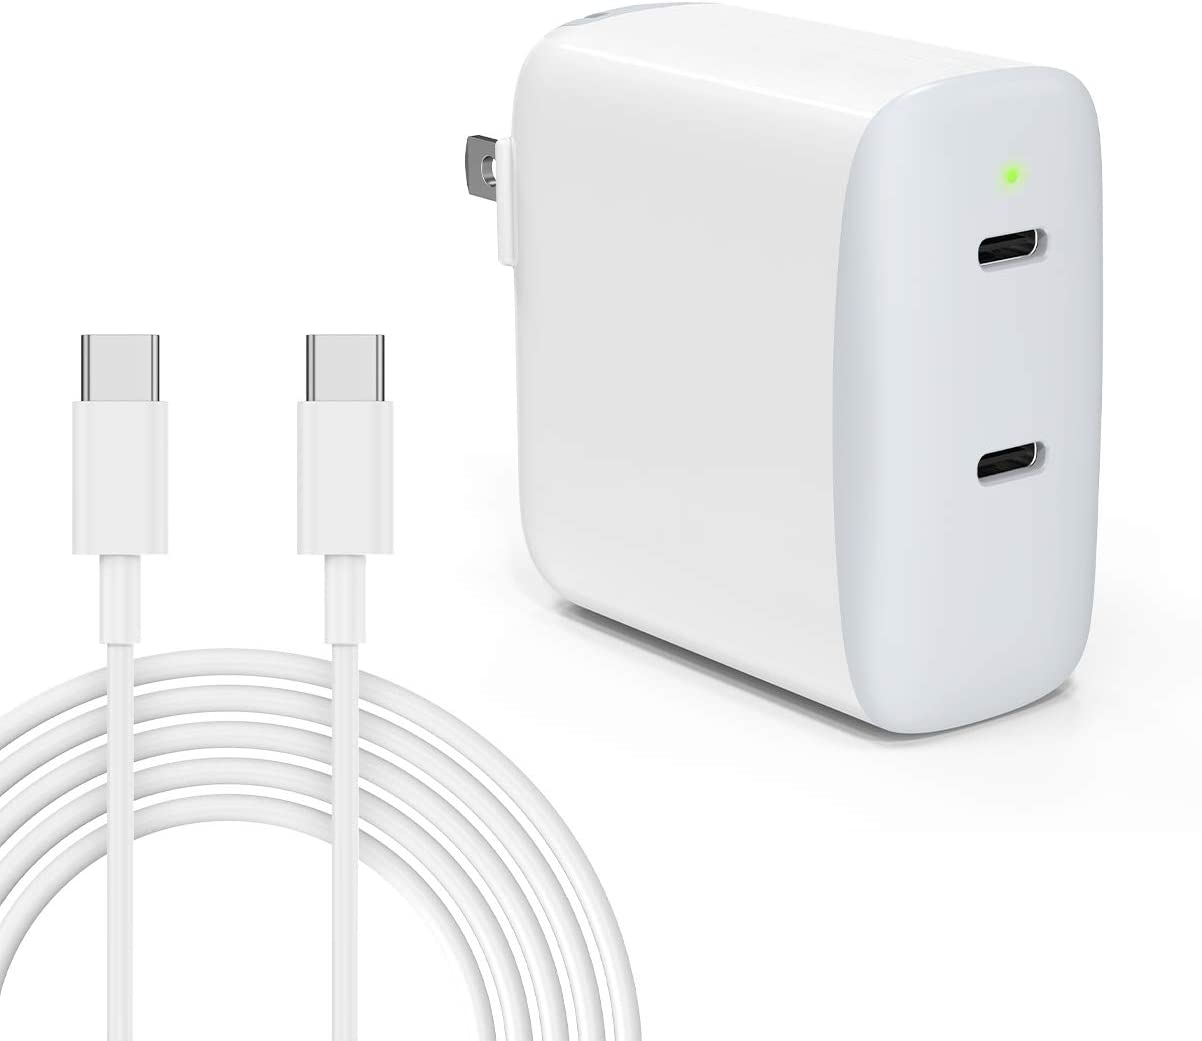 iPhone Charger, 40W USB C Charger, 2-Port Fast Charging Block, PD 3.0 20W Fast Charger for iPhone 12 Pro Max Mini, iPad Pro M1 12.9 11 Air 4, Galaxy S21 S20, Pixel 5 4 3 2 with 6.6ft/2m Type C Cable